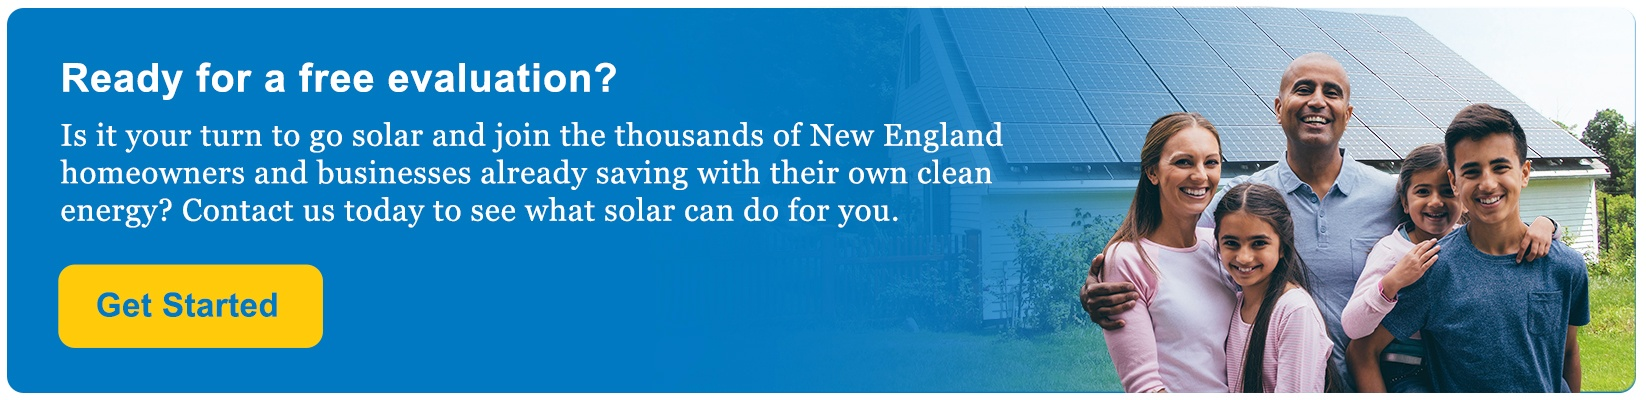 Contact us to go solar and join the thousands of New England homeowners and businesses already saving with their own clean energy.